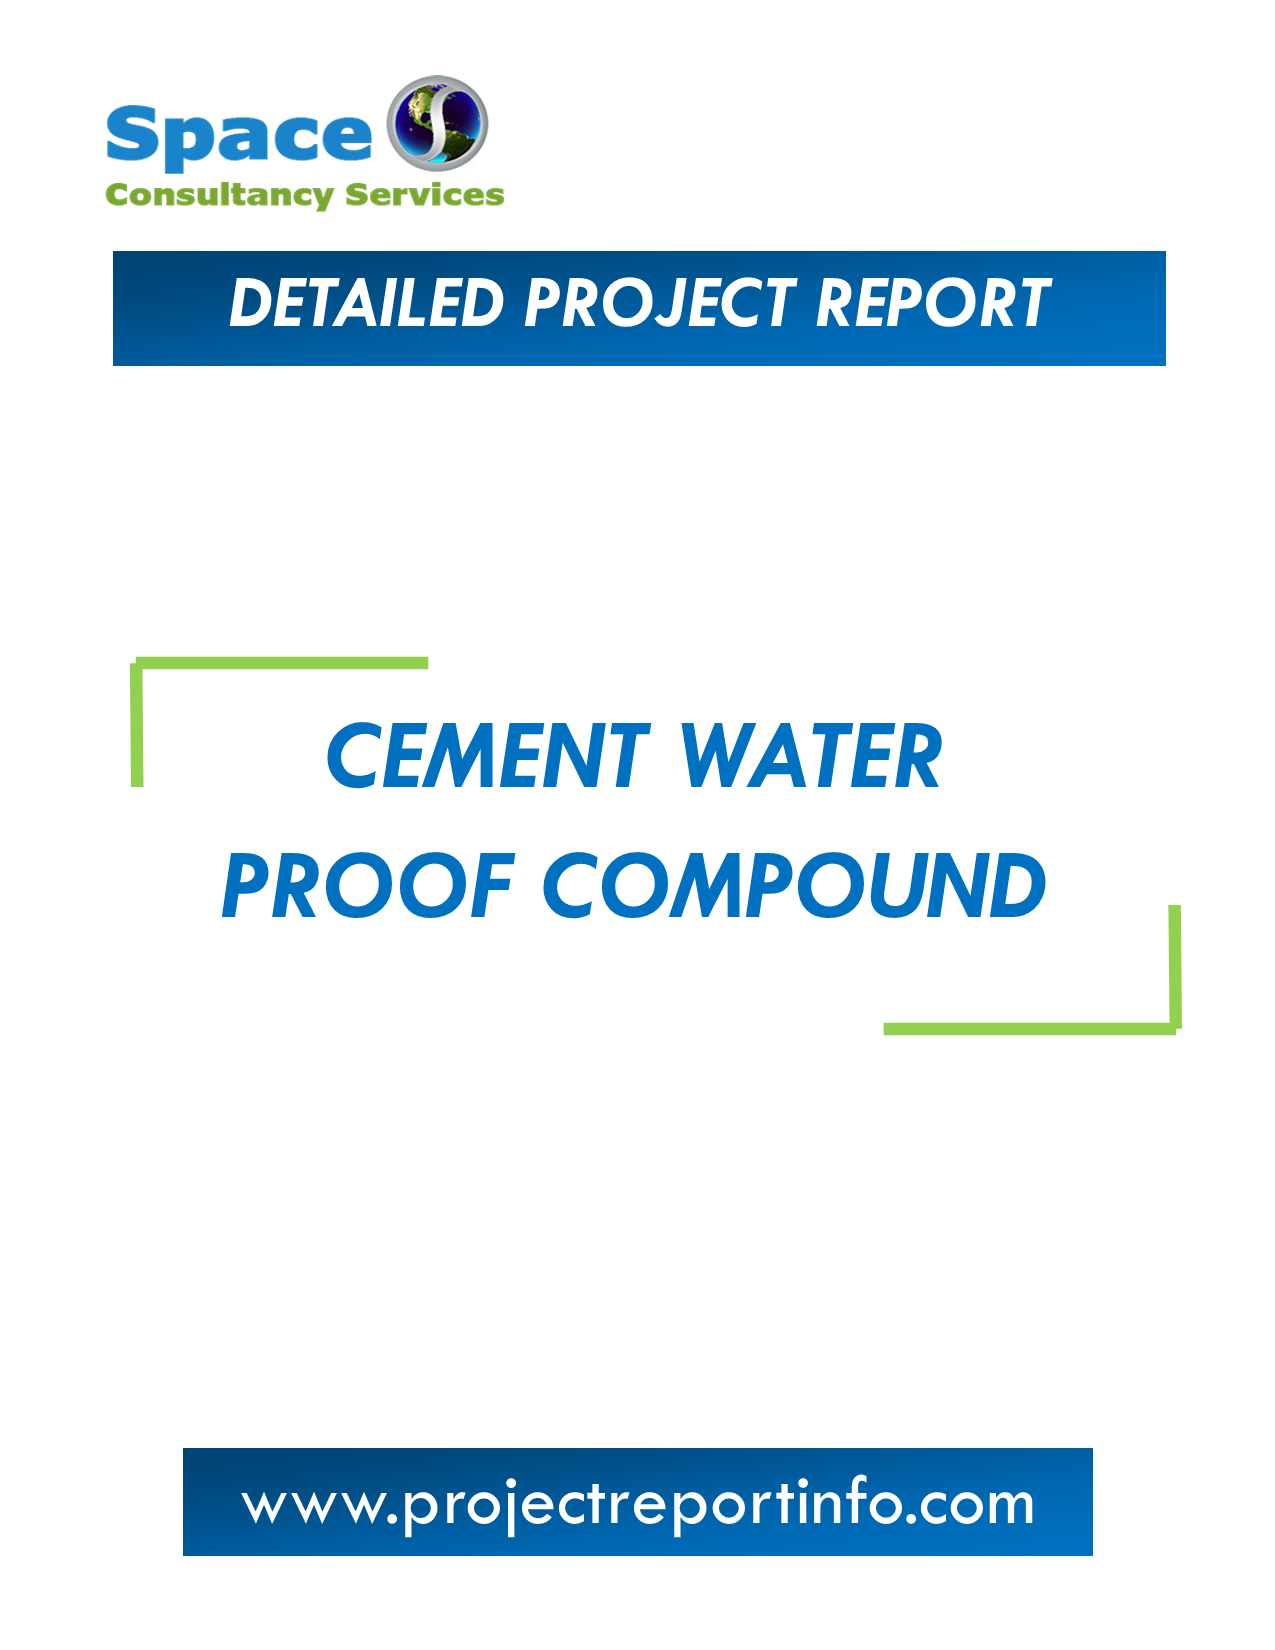 Project Report on Cement Water Proof Compound Manufacturing